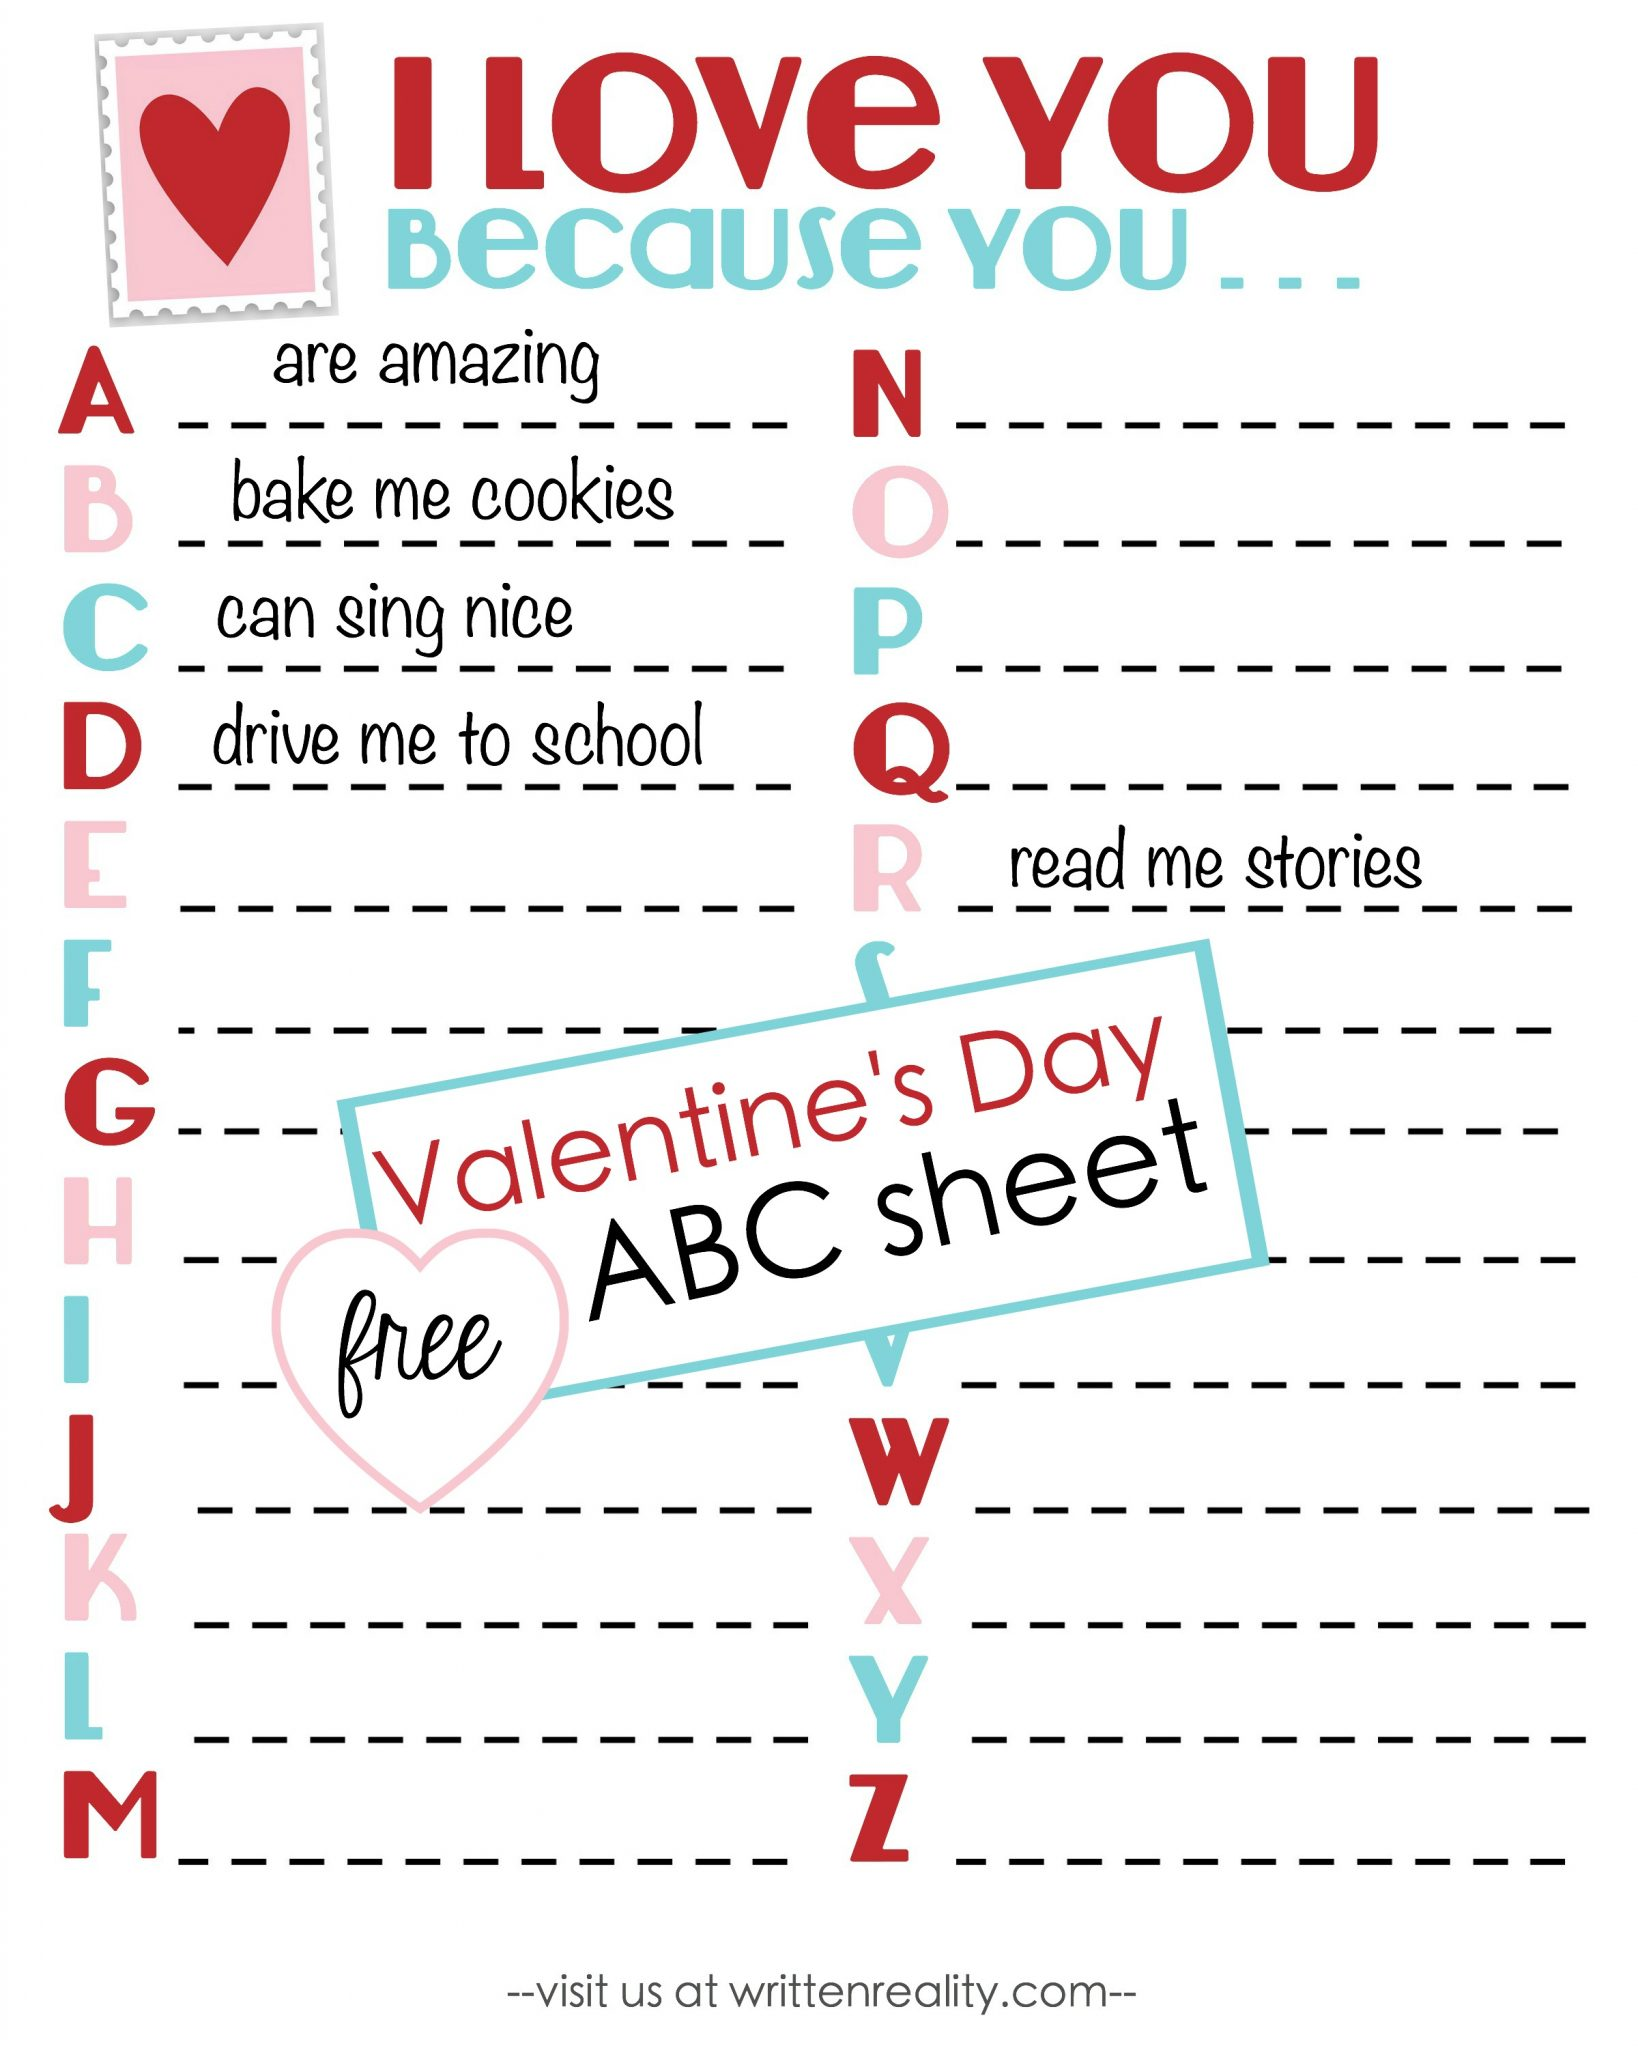 Here's a free Valentine's Day ABC Sheet to share!